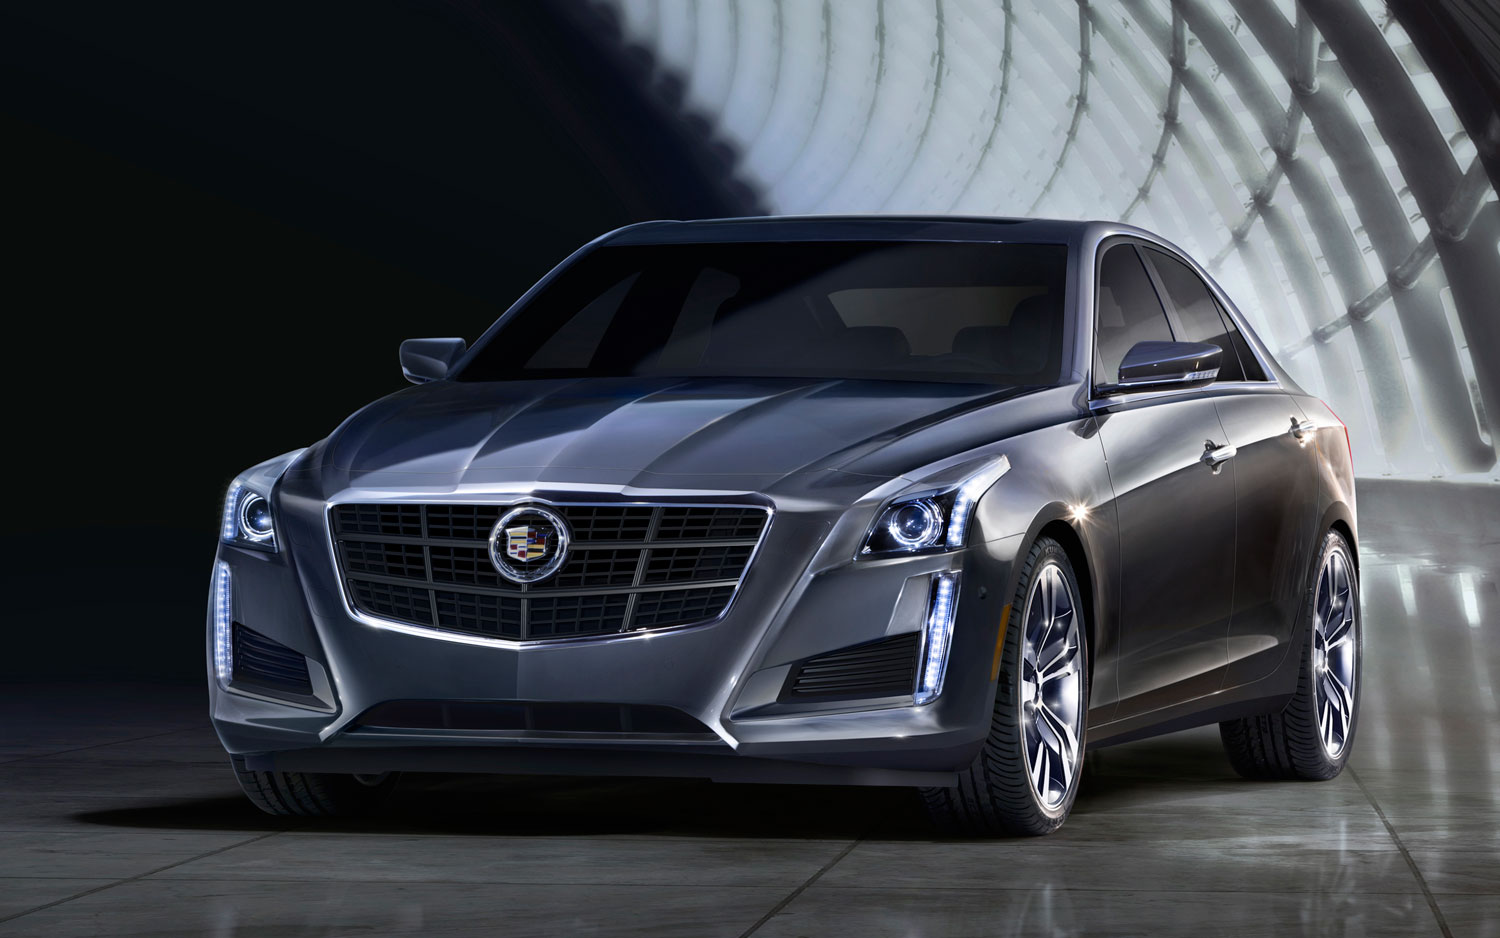 Cadillac Cts Front Left View